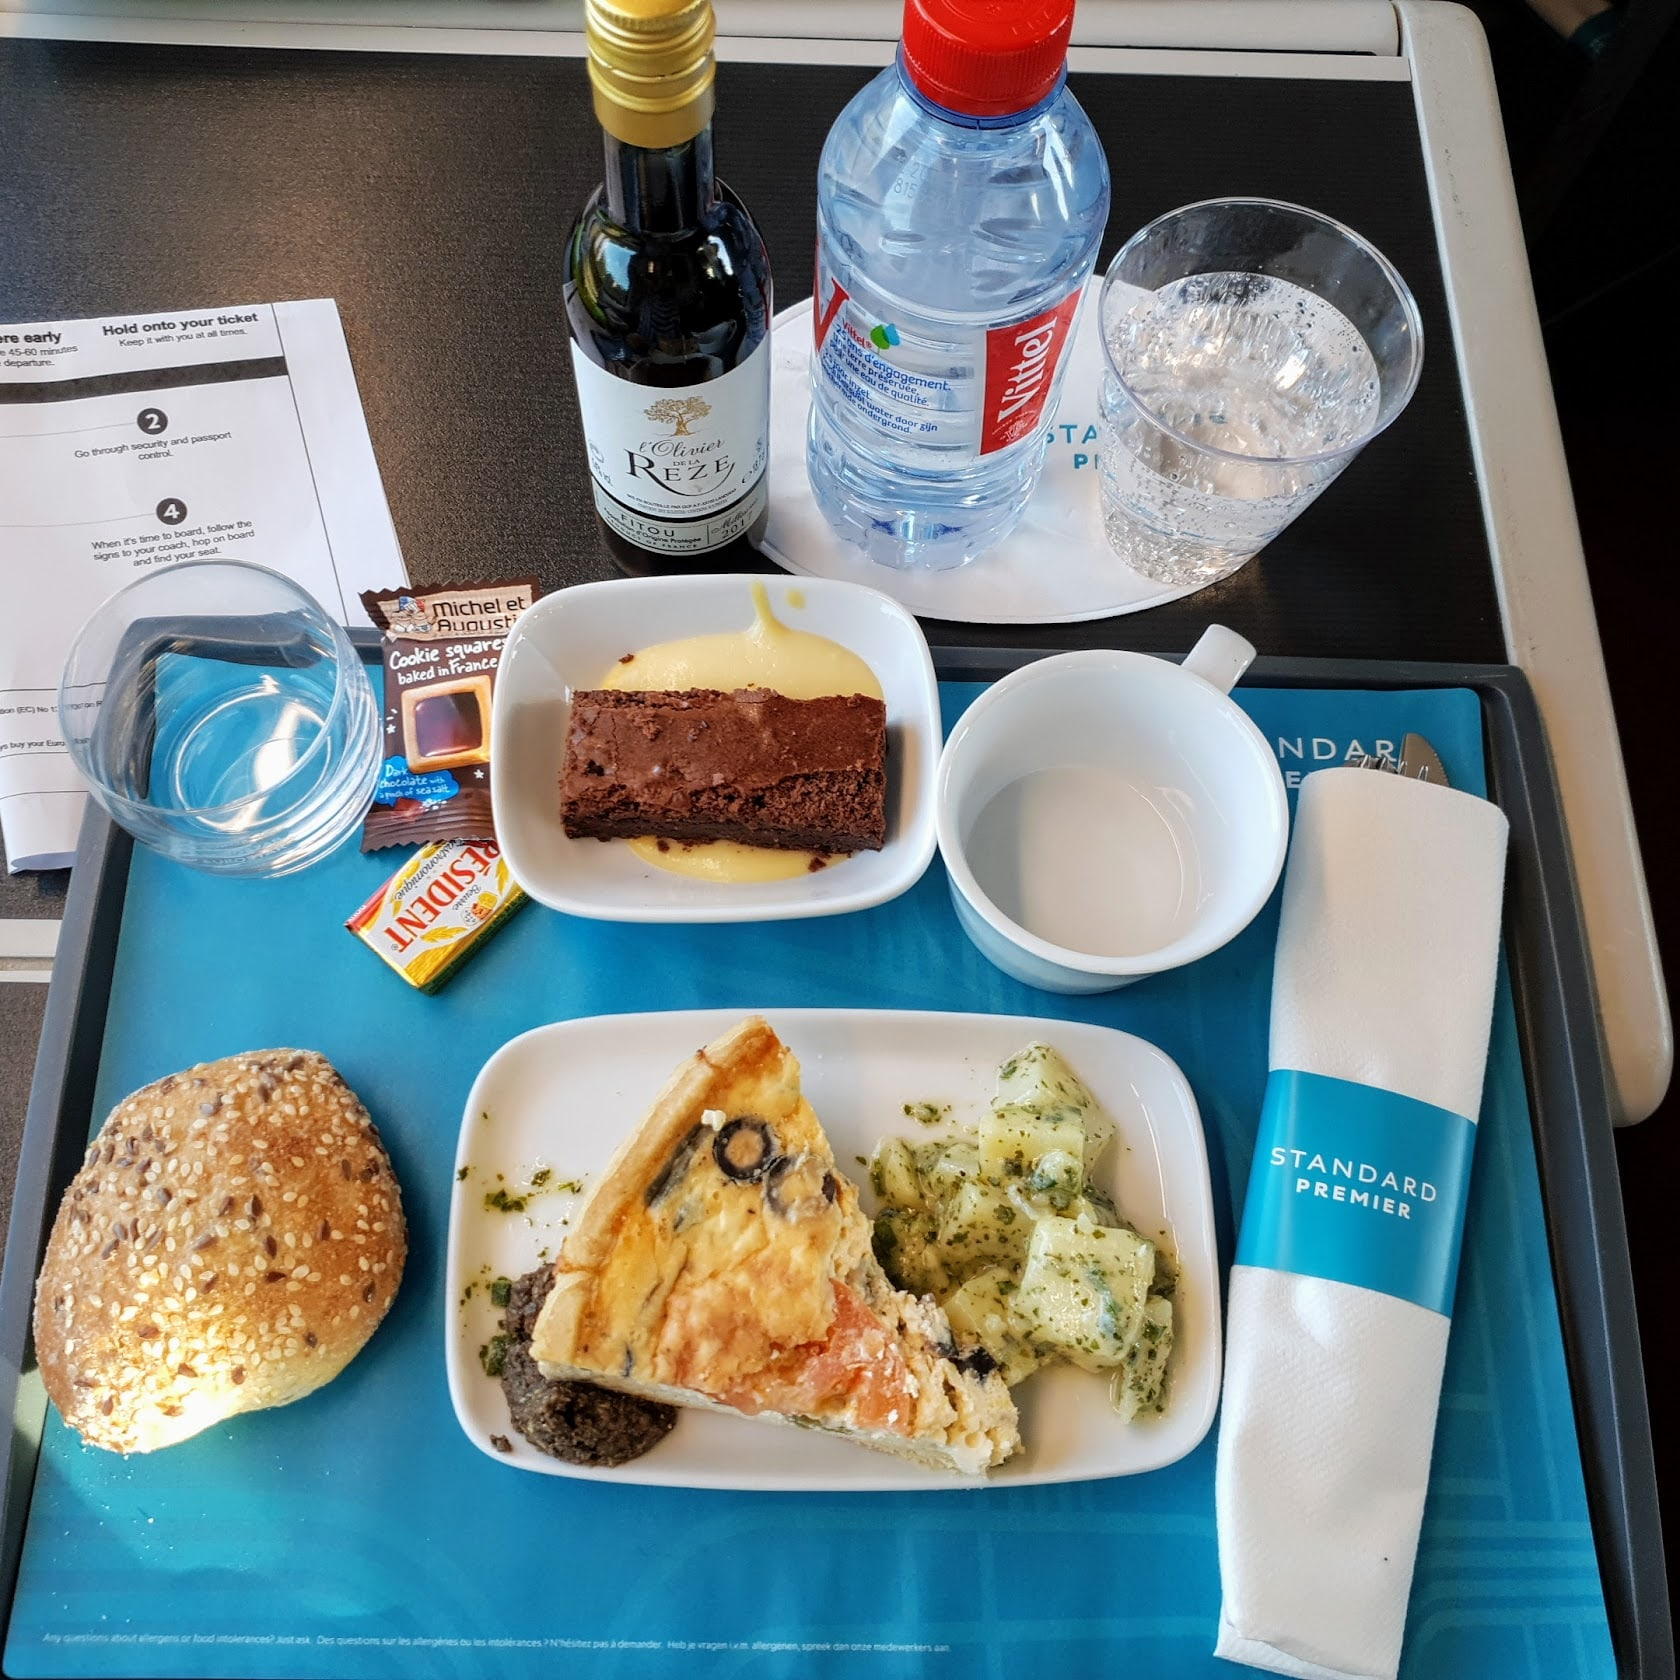 Eurostar Standard Premier dinner- travelling from London to Rotterdam by Eurostar